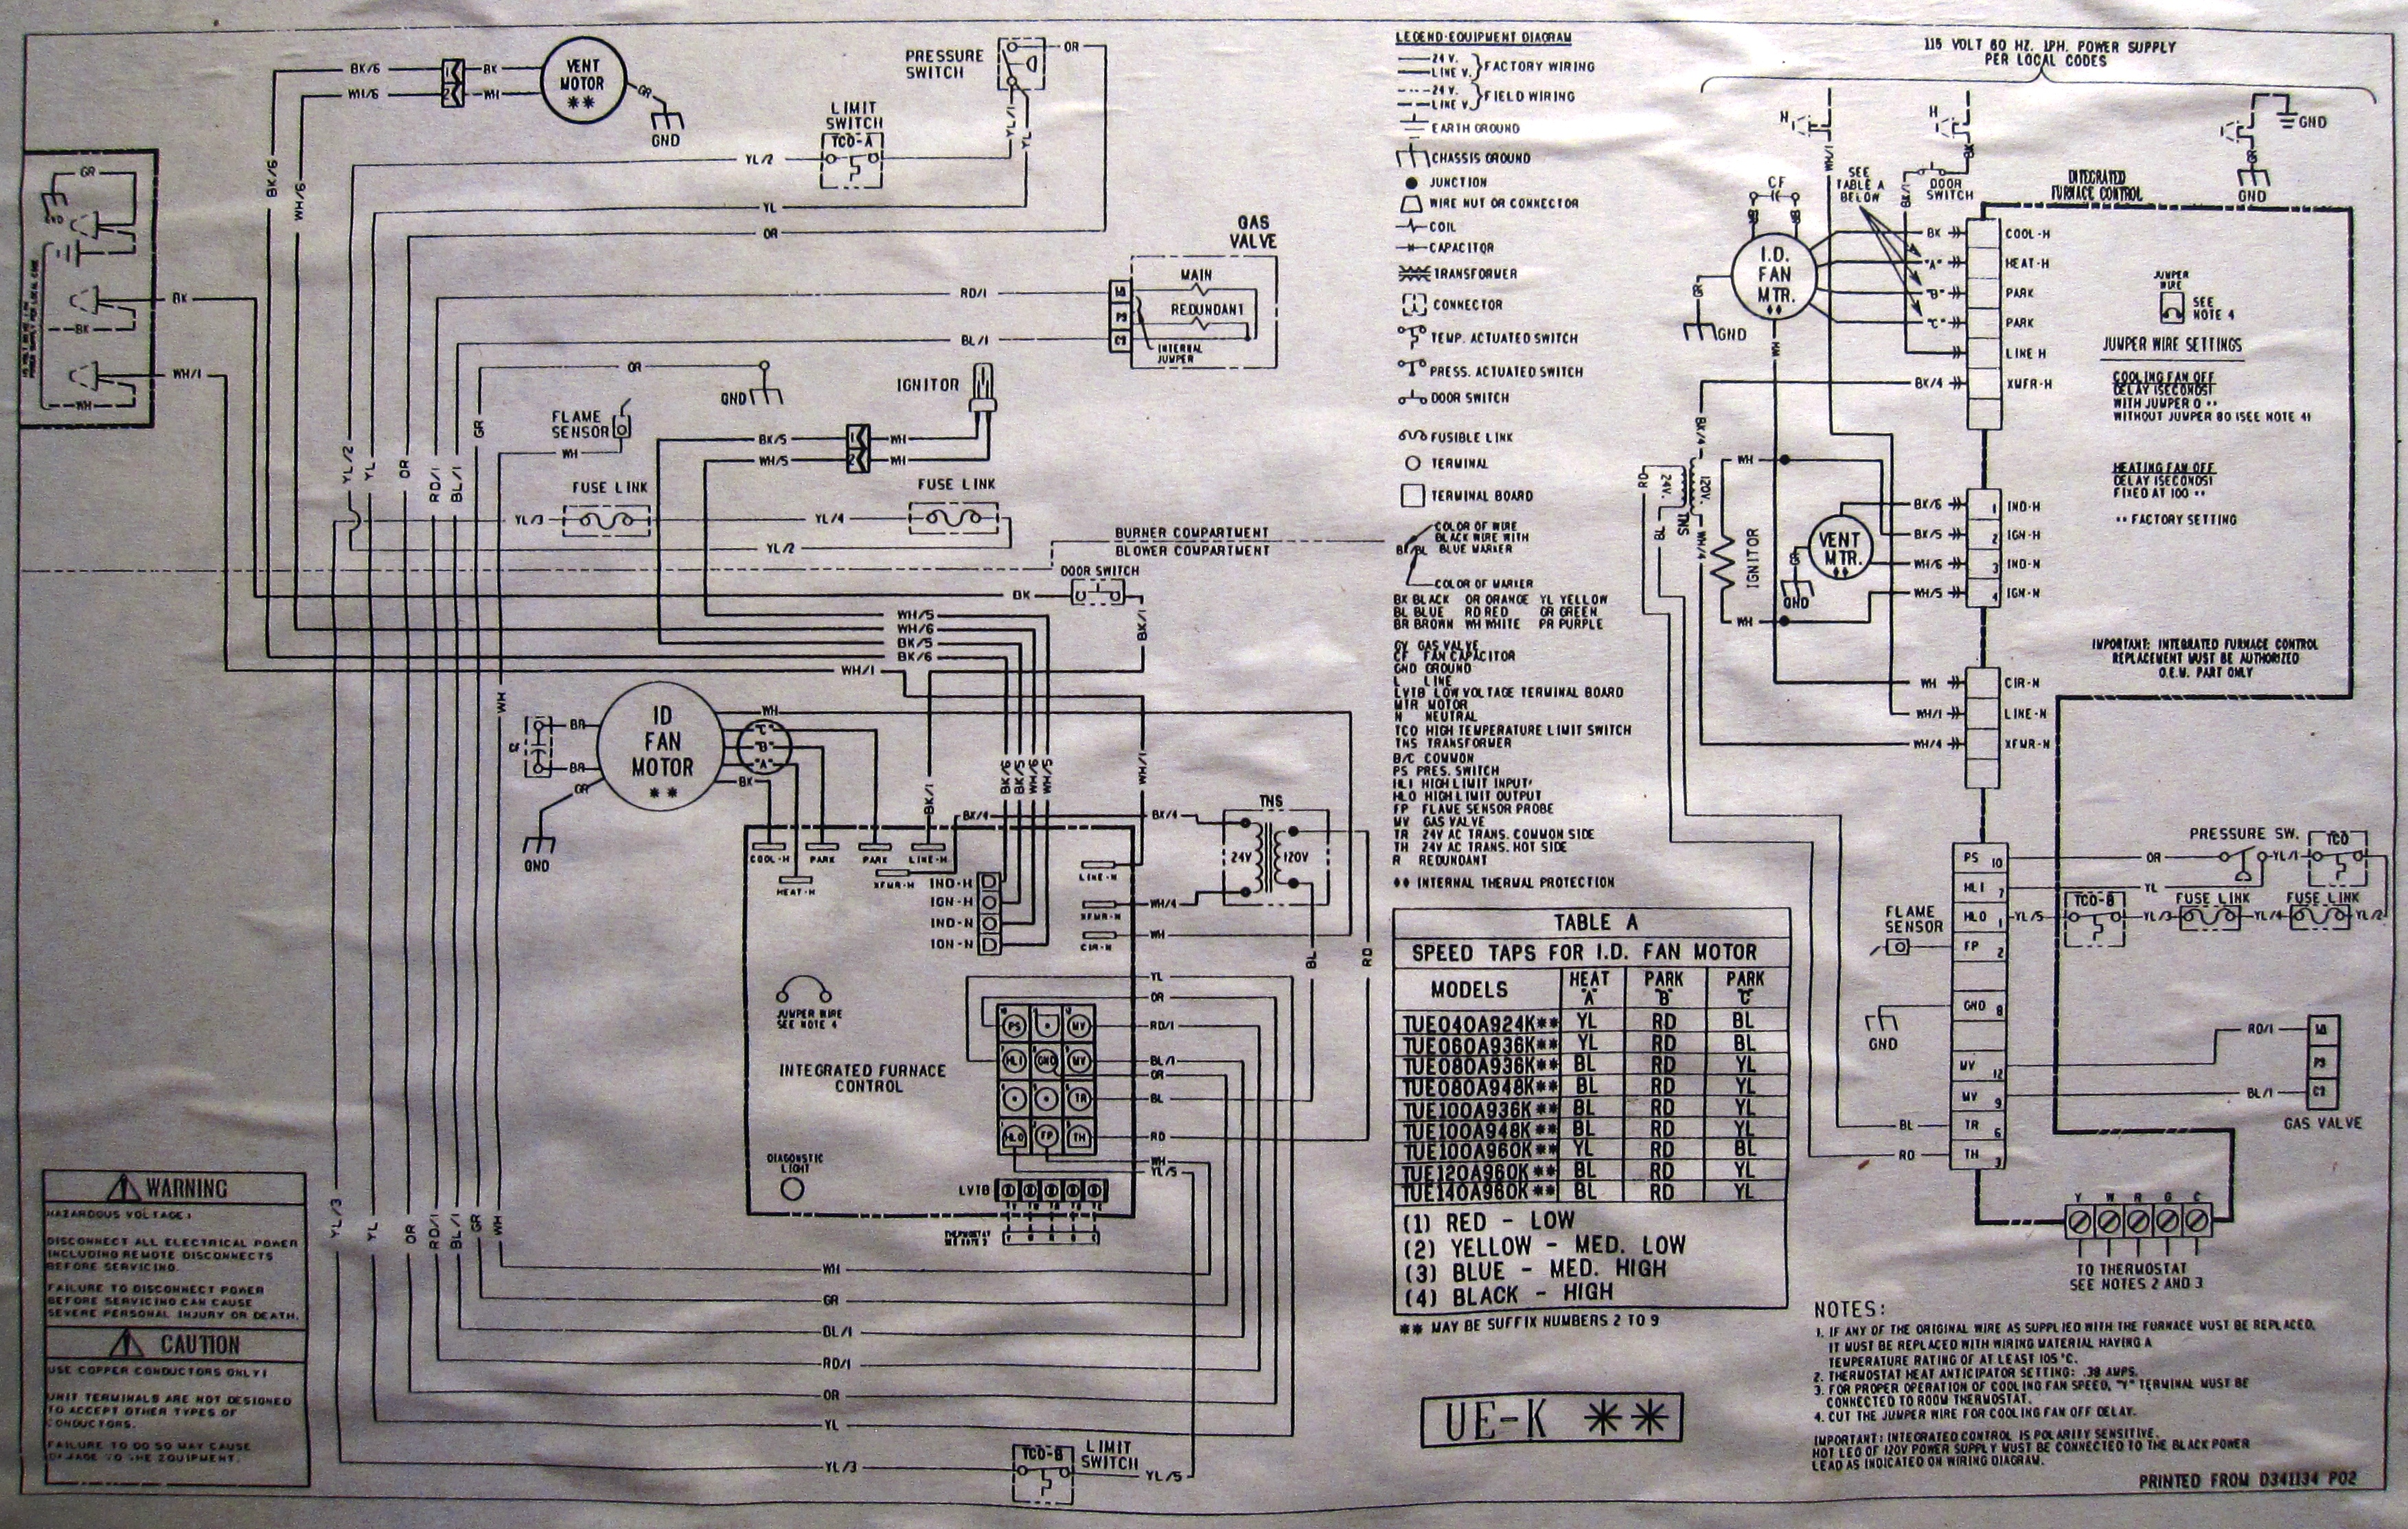 goodman furnace wiring diagram 4 wire condenser fan motor wiring diagram images fan motor wiring 4 wire condenser fan motor